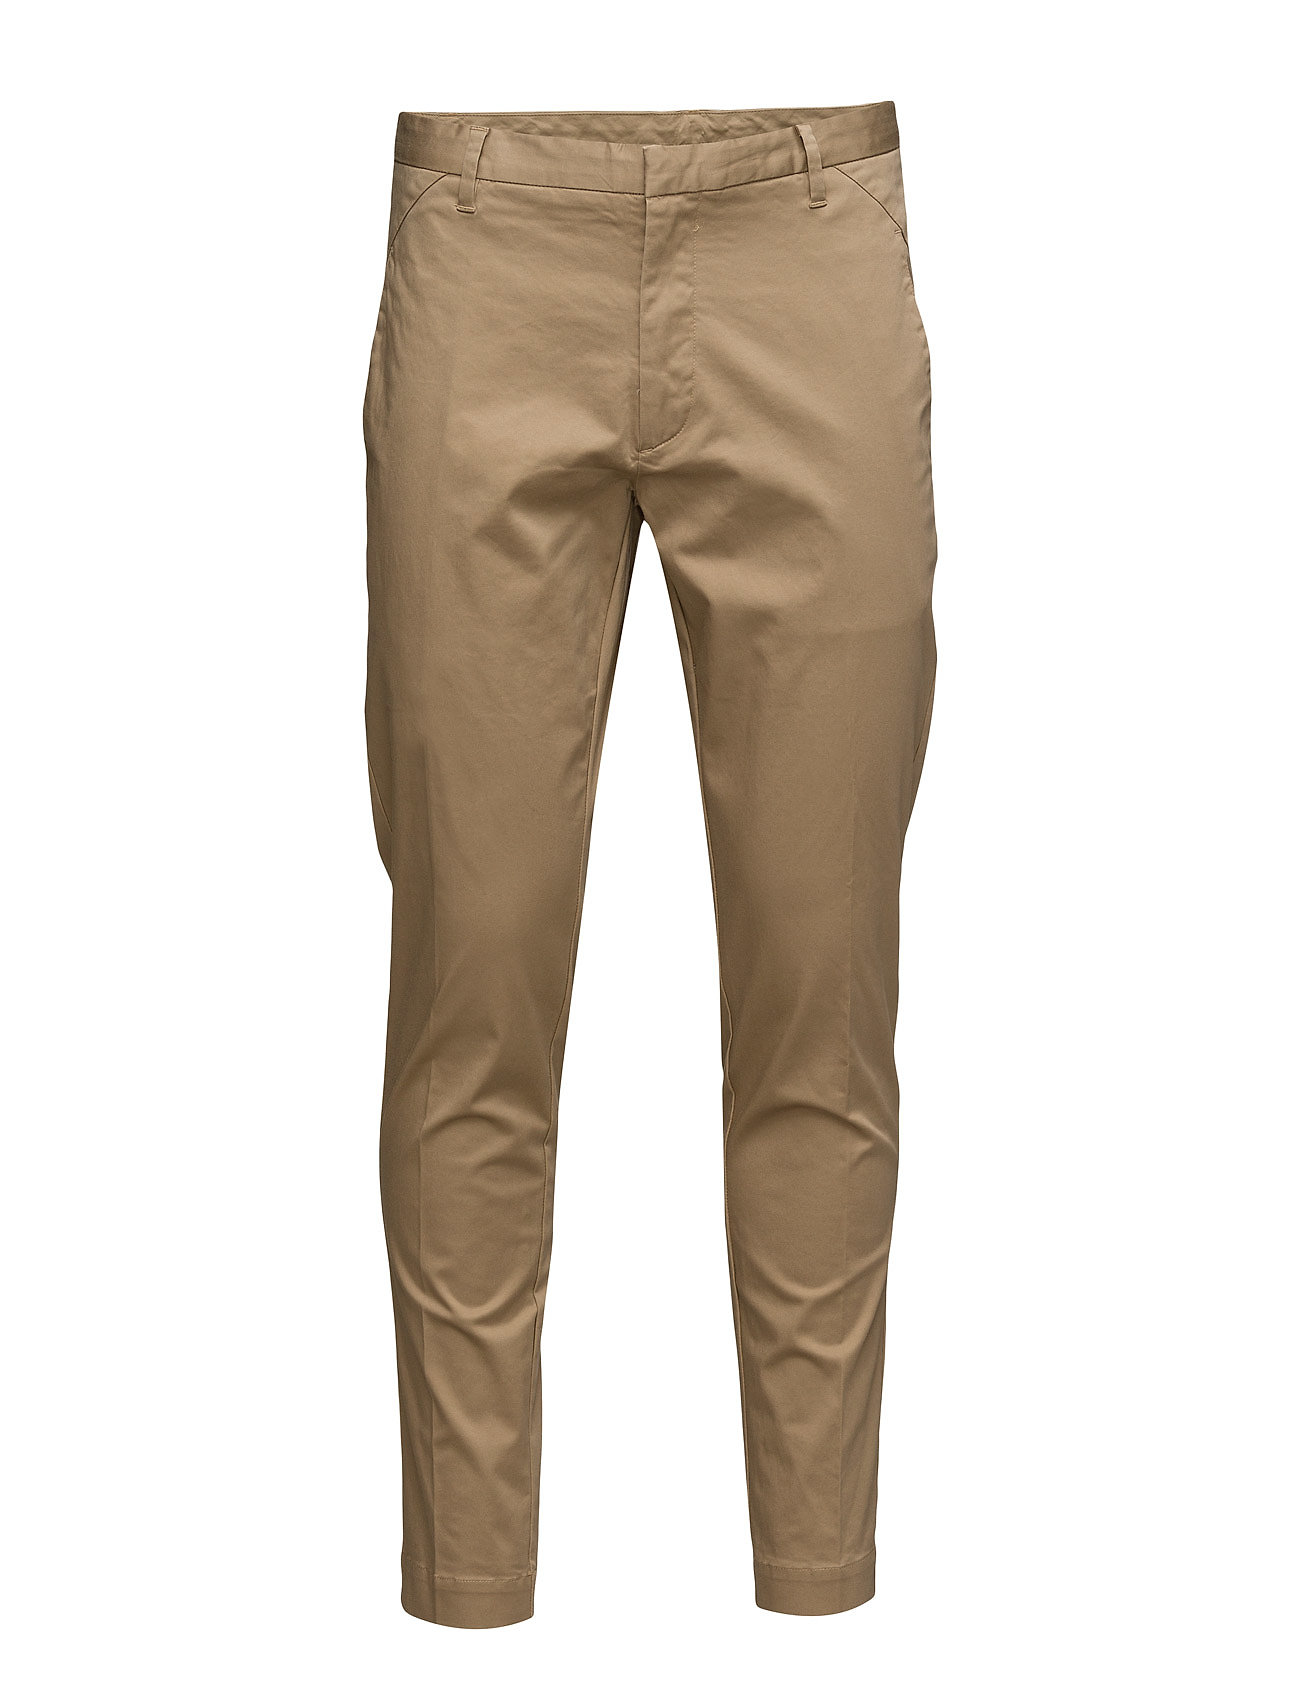 Whyred CRON SATIN STRETCH - BEIGE